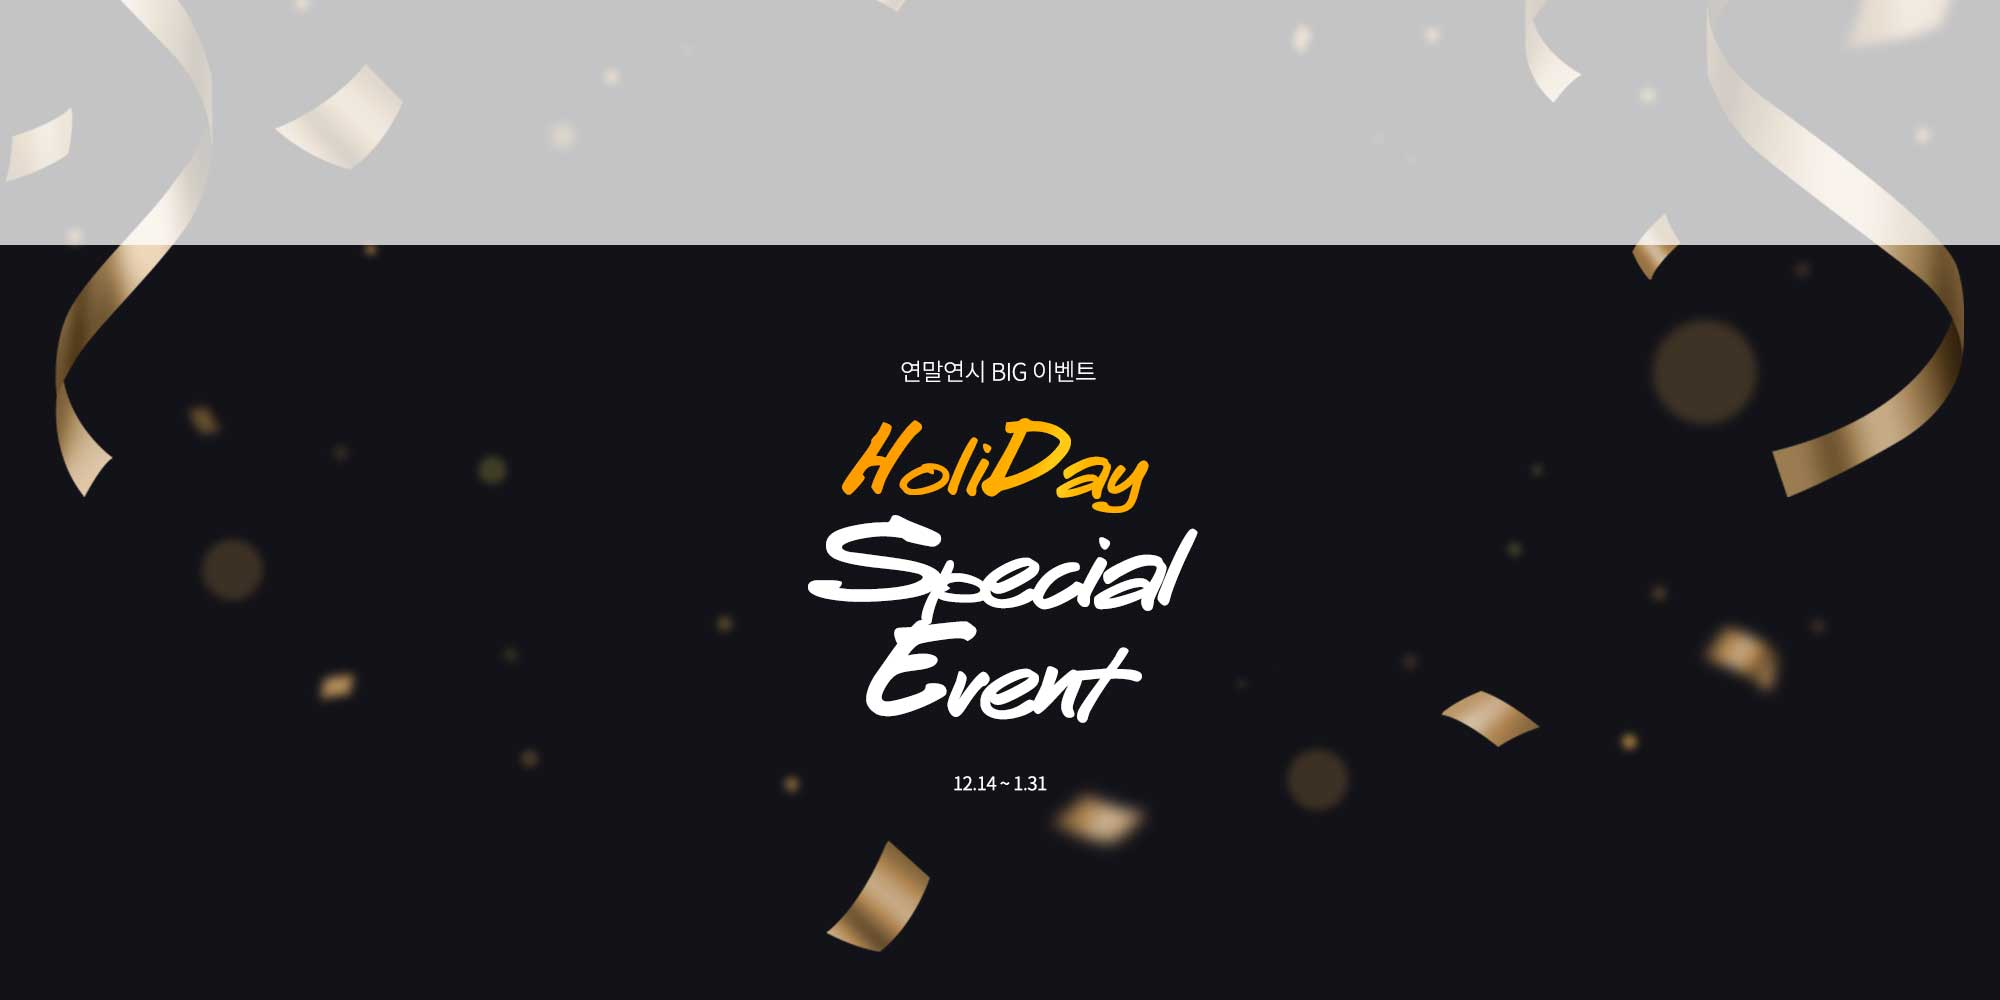 HOLIDAY SPECIAL EVENT